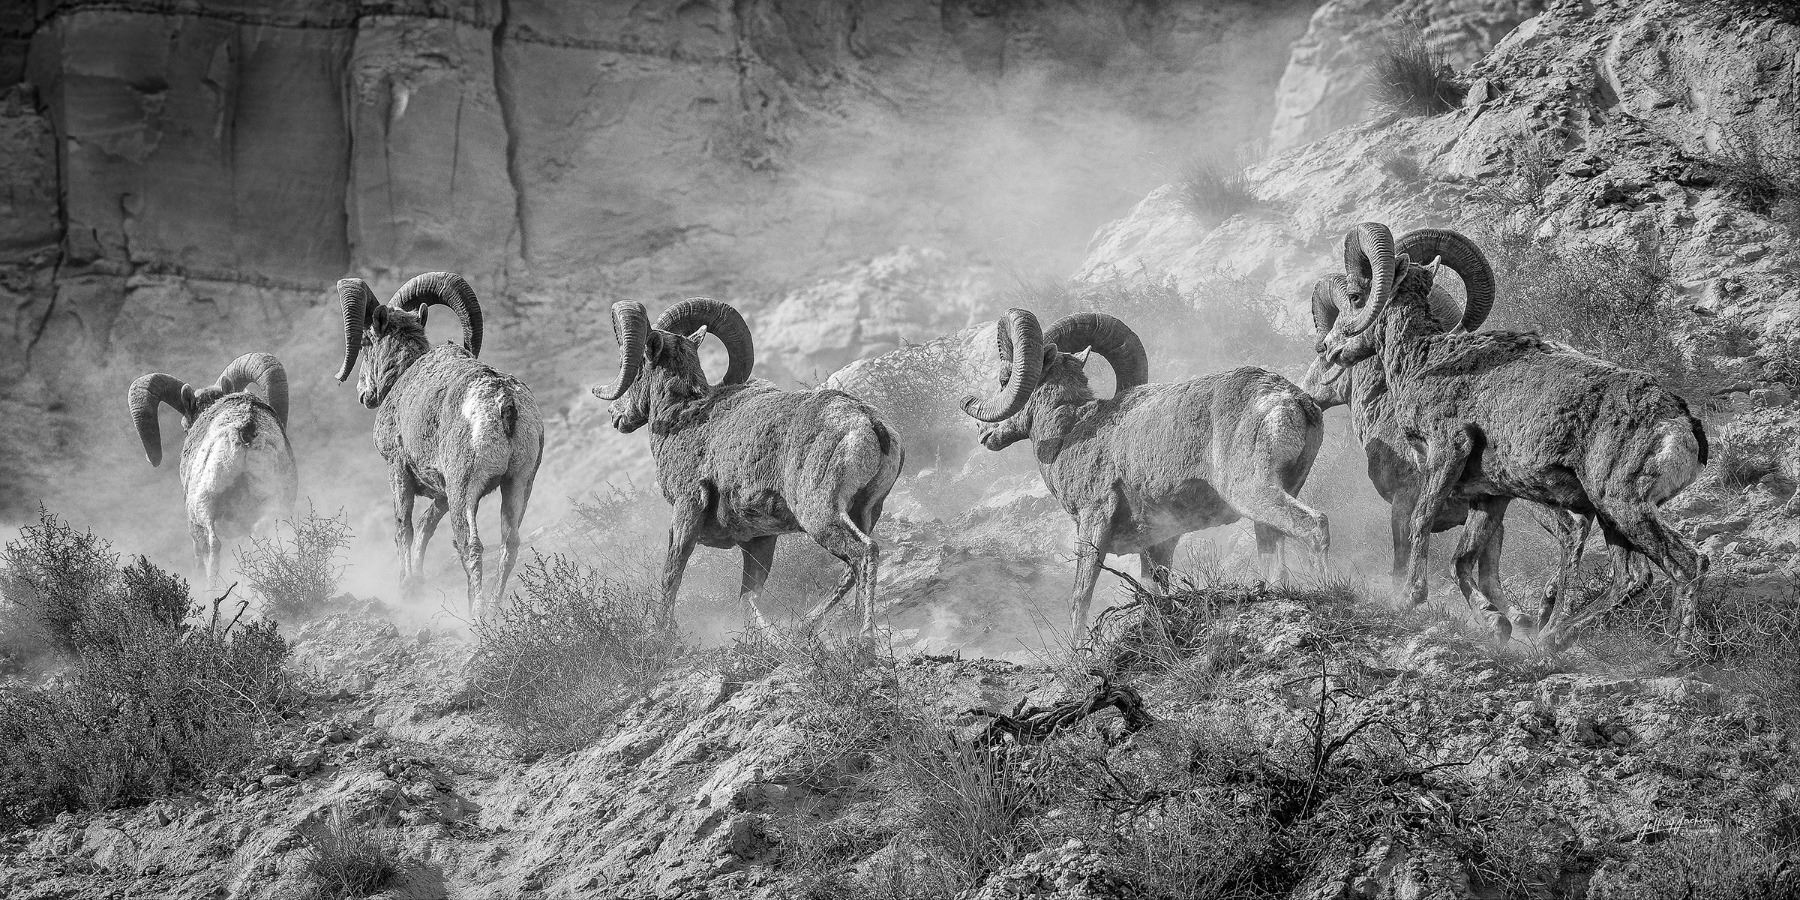 """""""THE GREAT MARCH WEST"""" CALIFORNIA BIGHORNS FROM KAMLOOPS, B.C. 18"""" X 36"""" CANVAS PRINT JEFFREY JACKSO"""